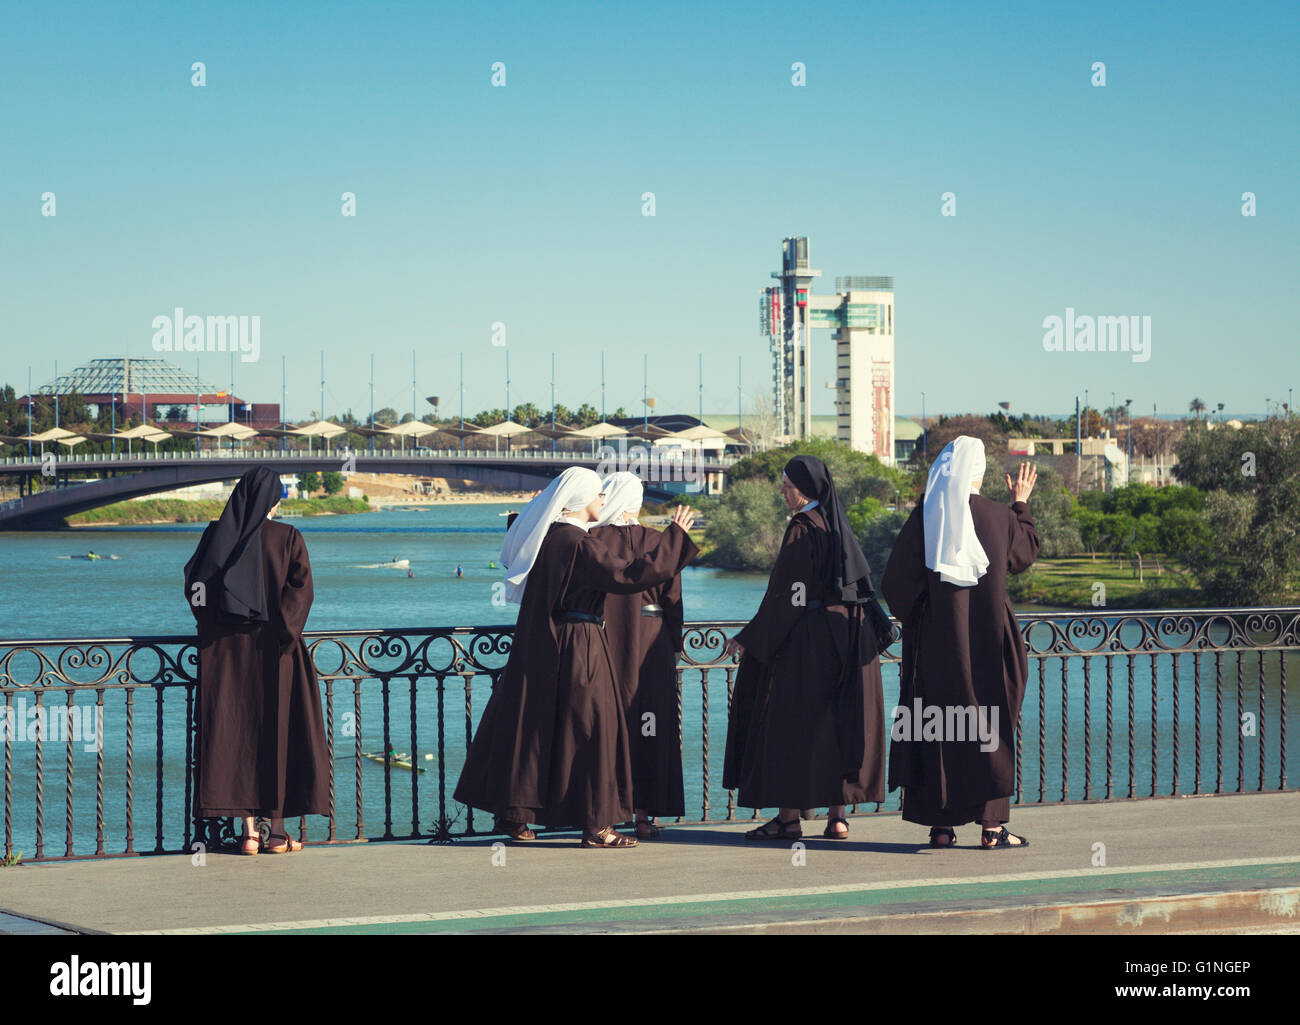 Group of five nuns watching the rowing boats on Guadalquivir river from Puente de Isabel II bridge, Seville, Spain - Stock Image